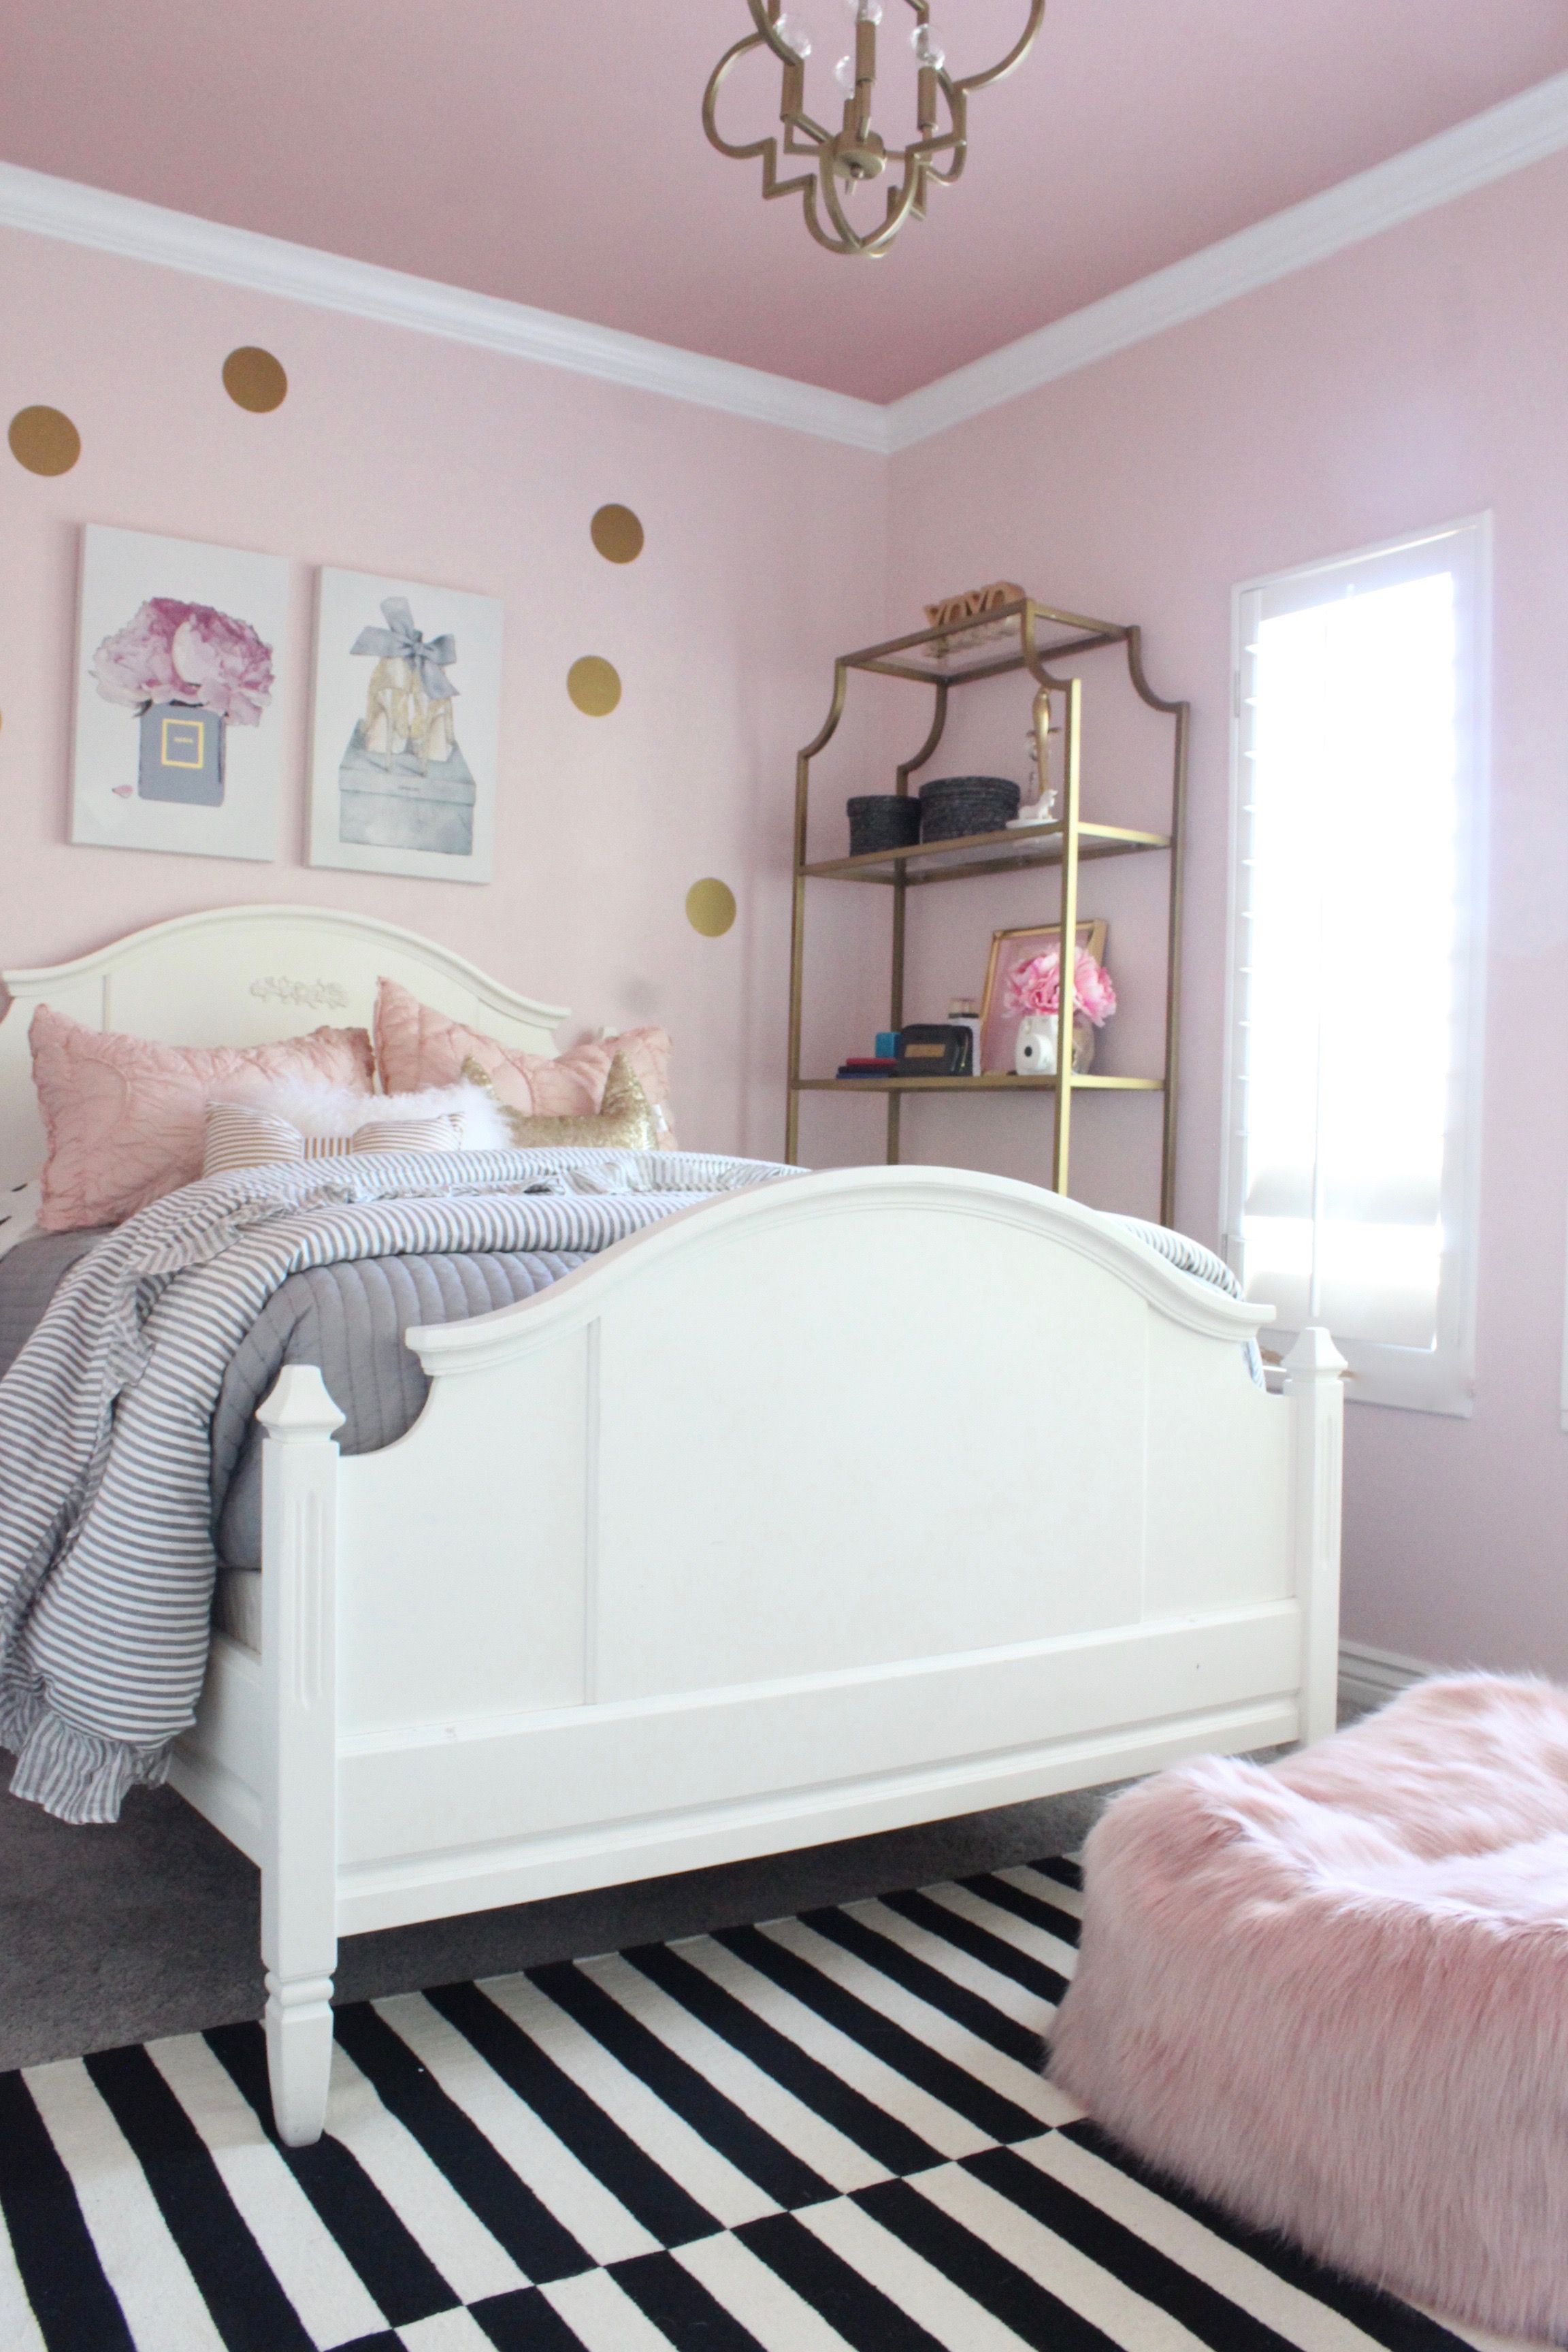 Blush Rose And Gold Tween Bedroom Ideas Pink Bedroom Decor Bedroom Themes Tween Bedroom Decor